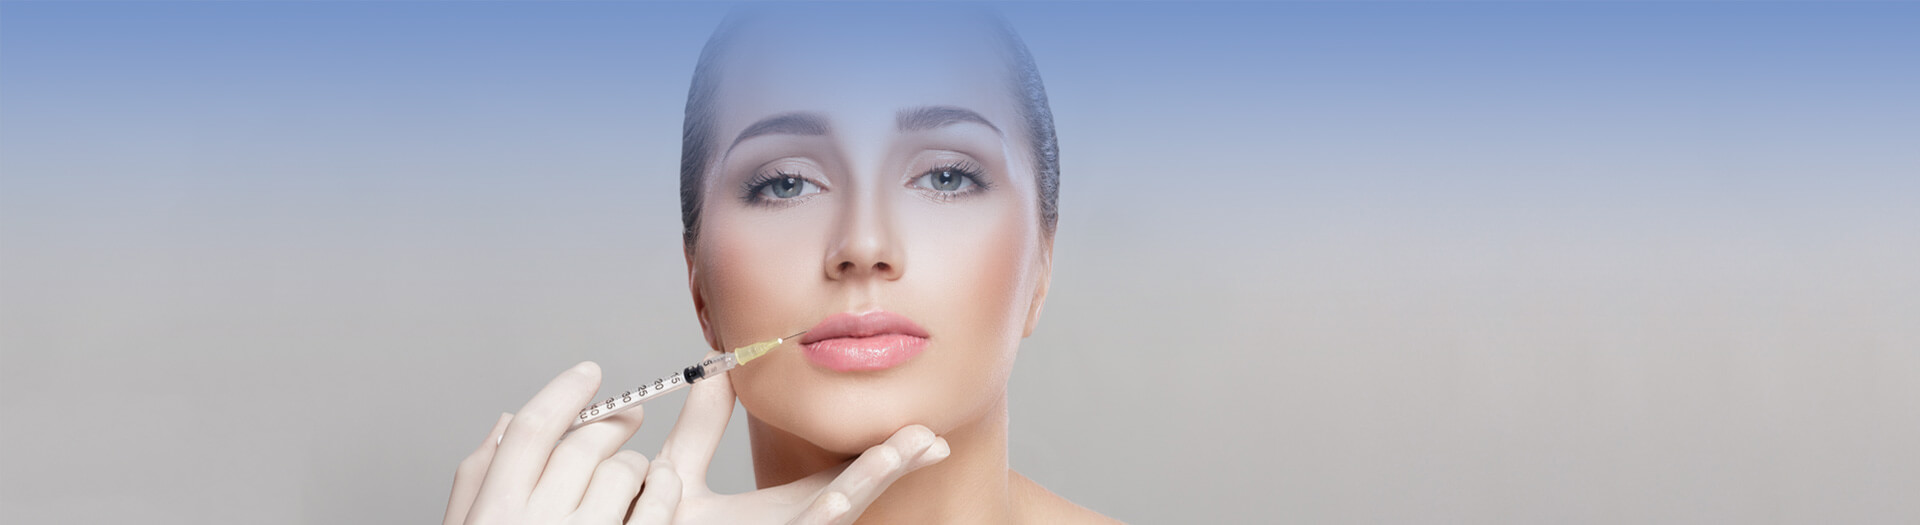 Woman getting Juvederm treatment